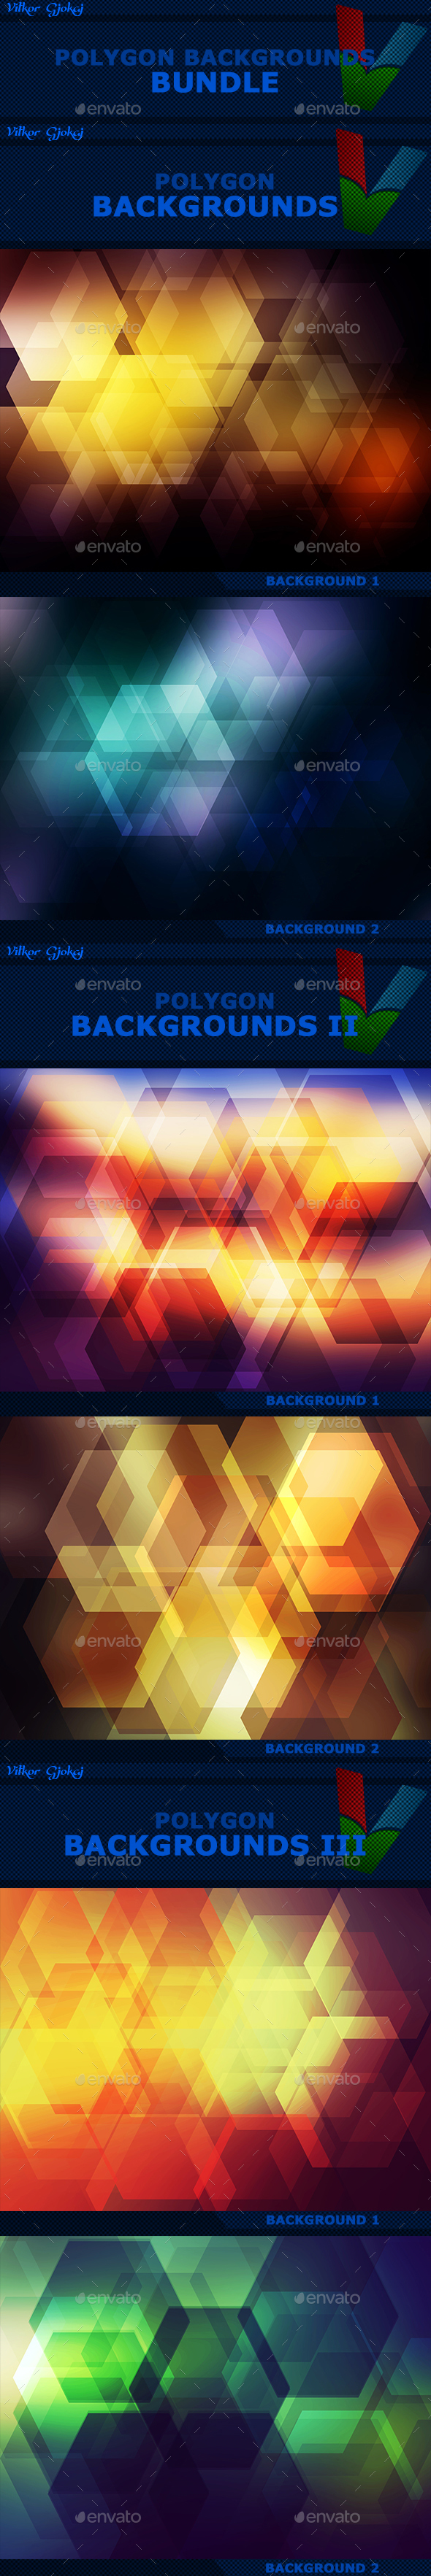 15 Polygon Backgrounds BUNDLE - Abstract Backgrounds